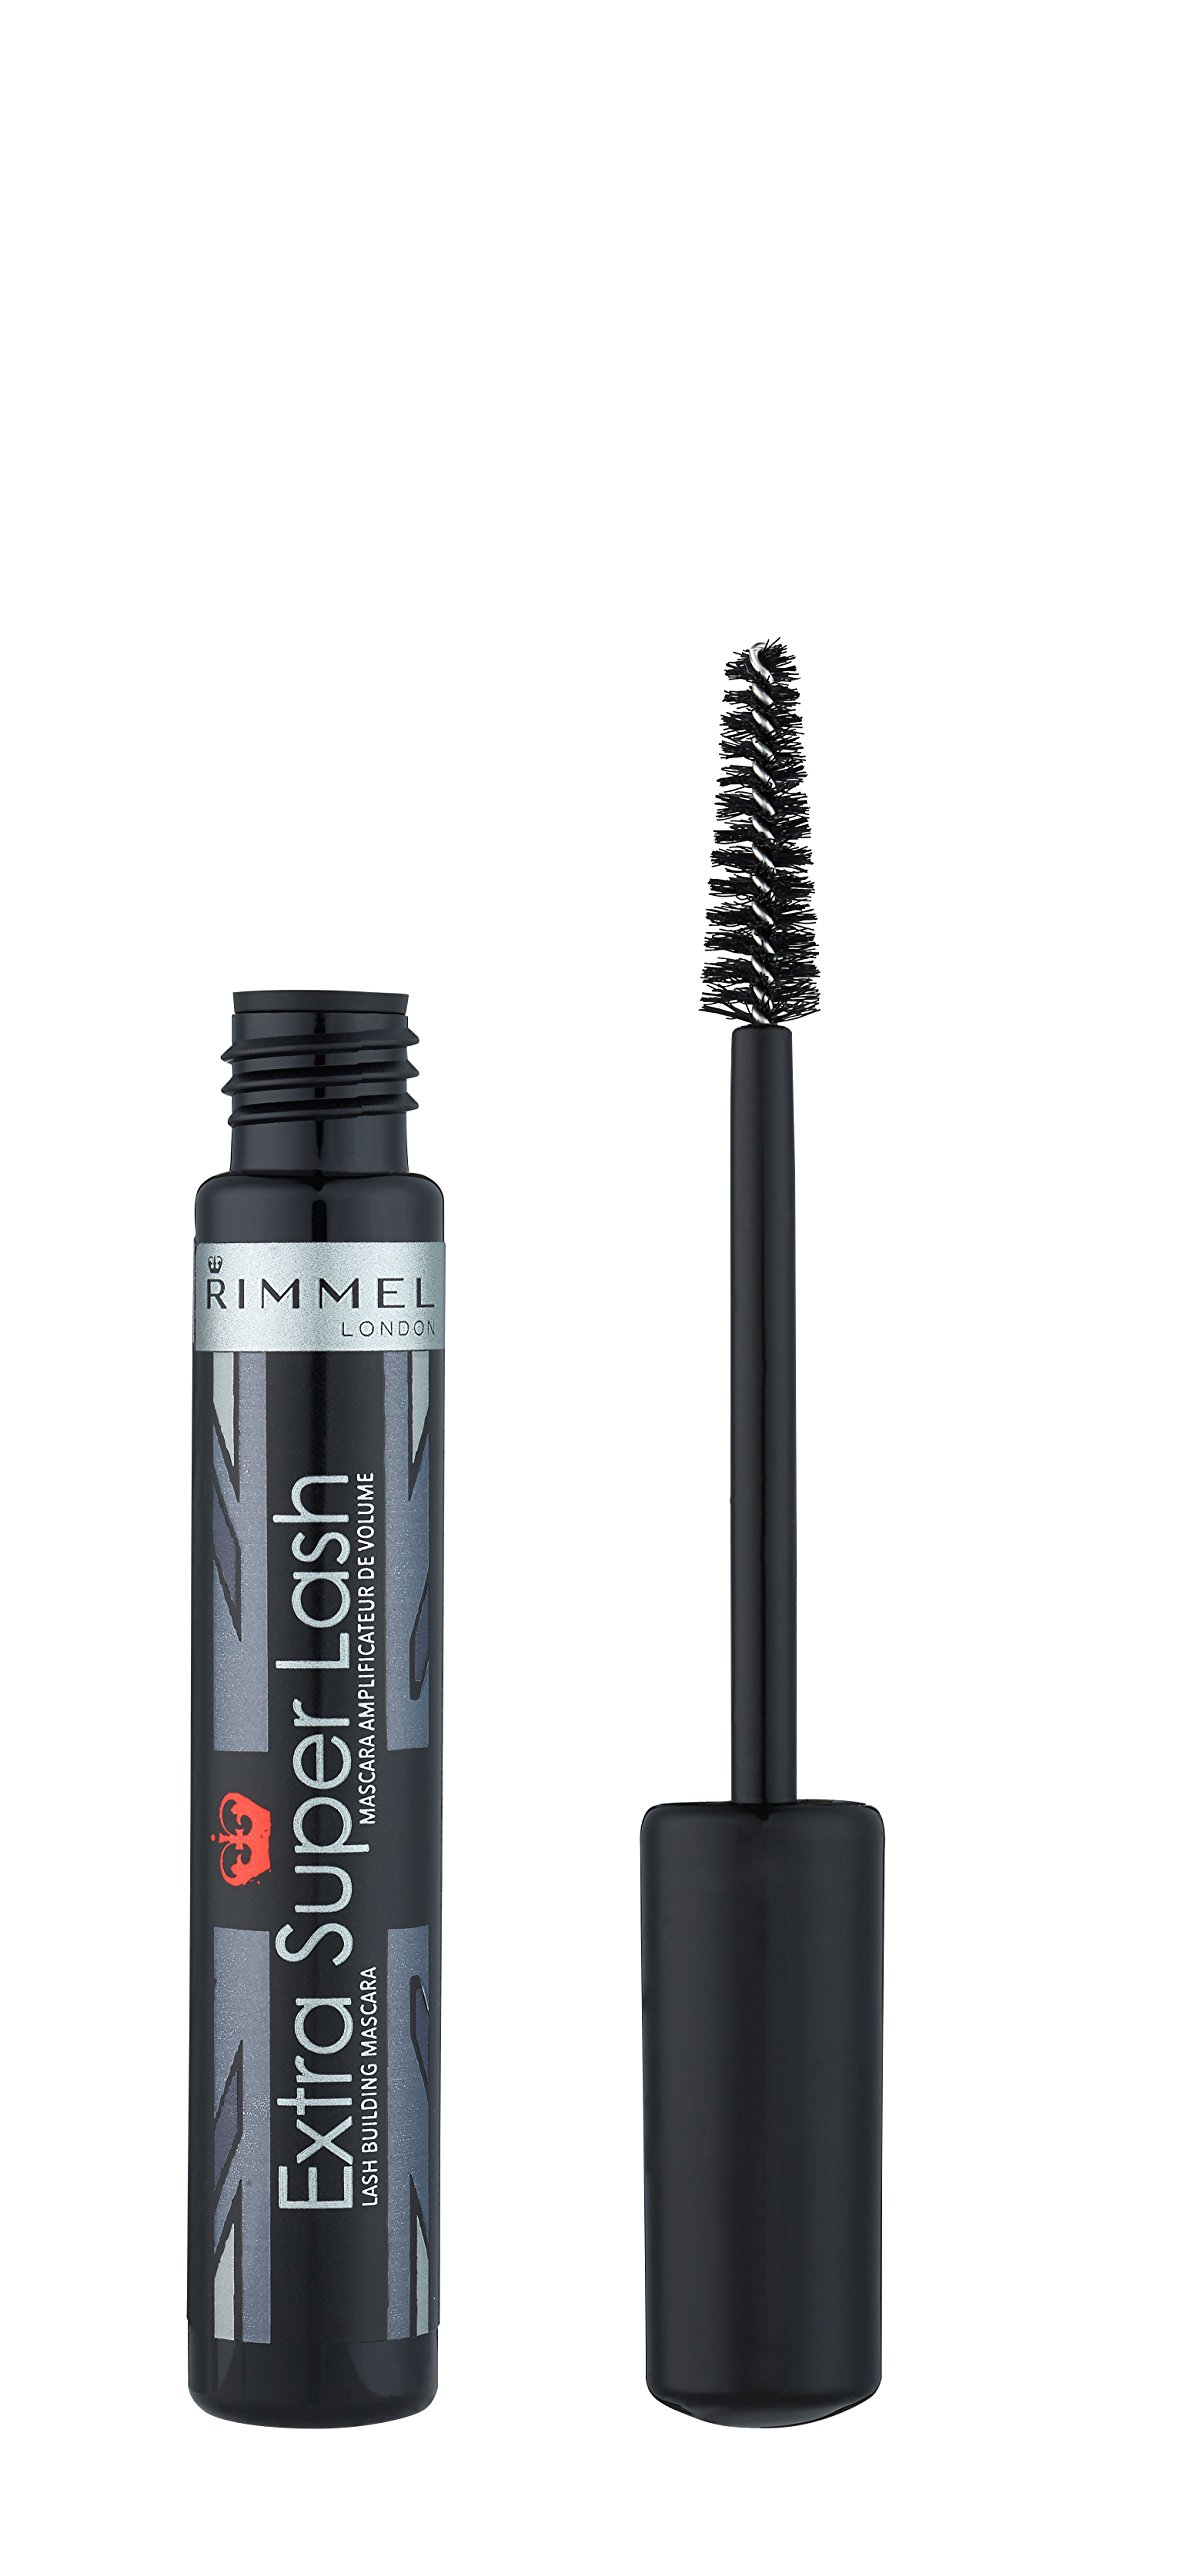 rimmel extra super lash mascara review